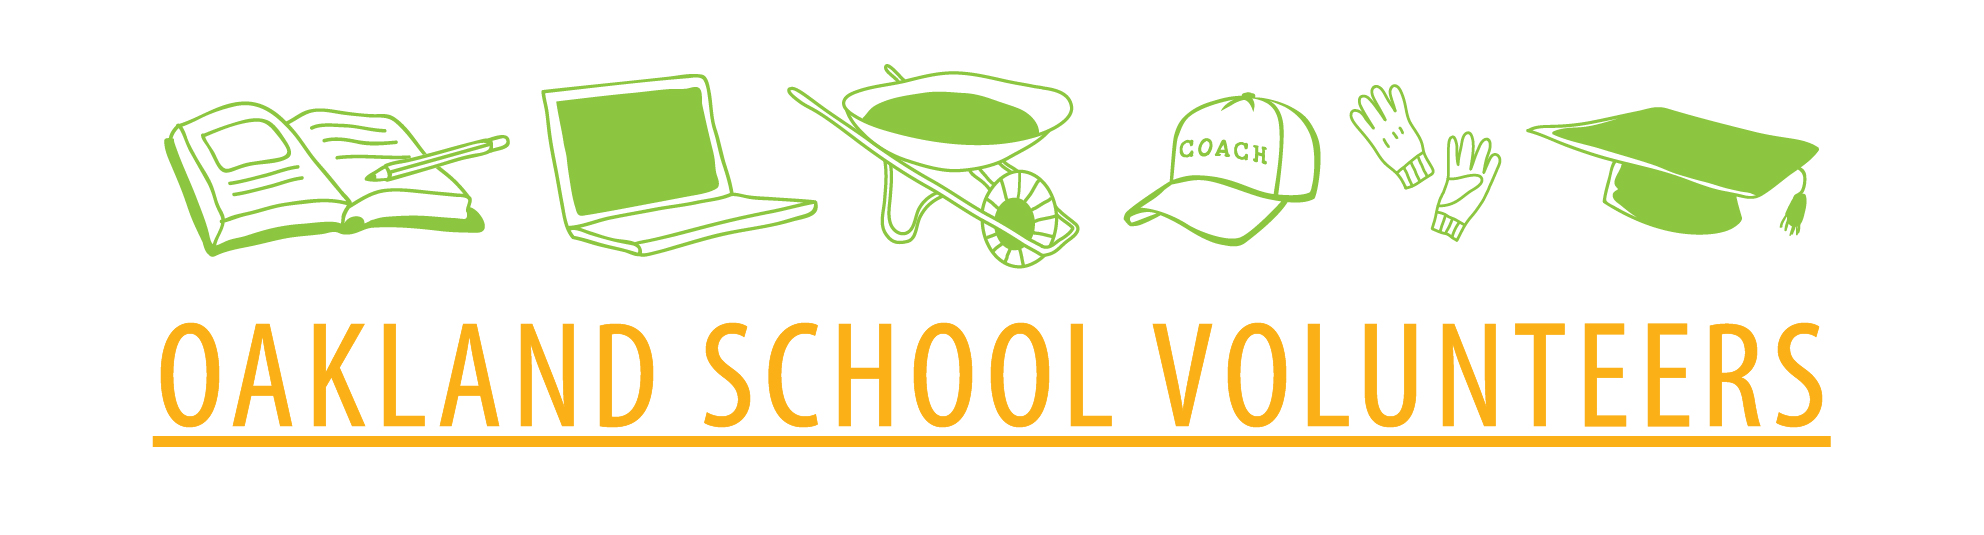 Oakland School Volunteers Logo